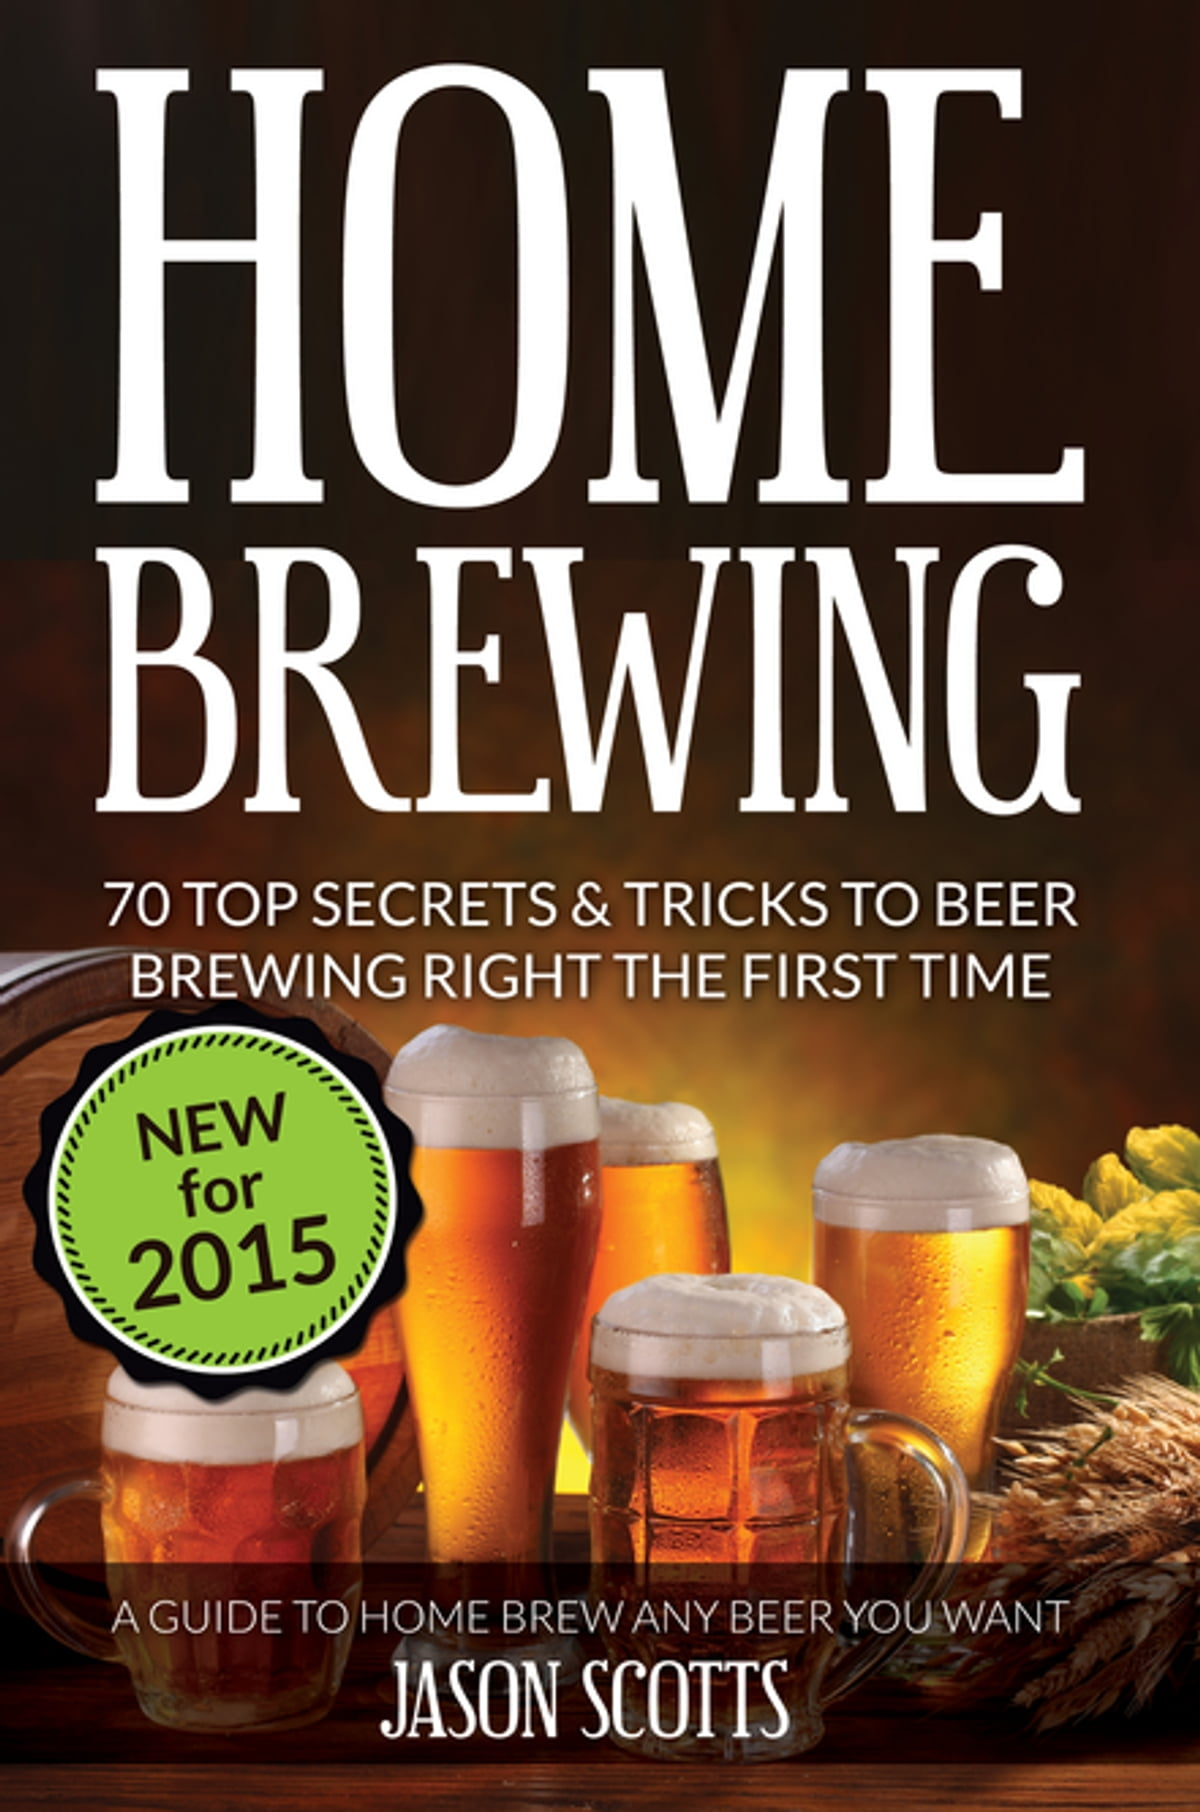 Home Brewing: 70 Top Secrets & Tricks To Beer Brewing Right The First Time:  A Guide To Home Brew Any Beer You Want ebook by Jason Scotts - Rakuten